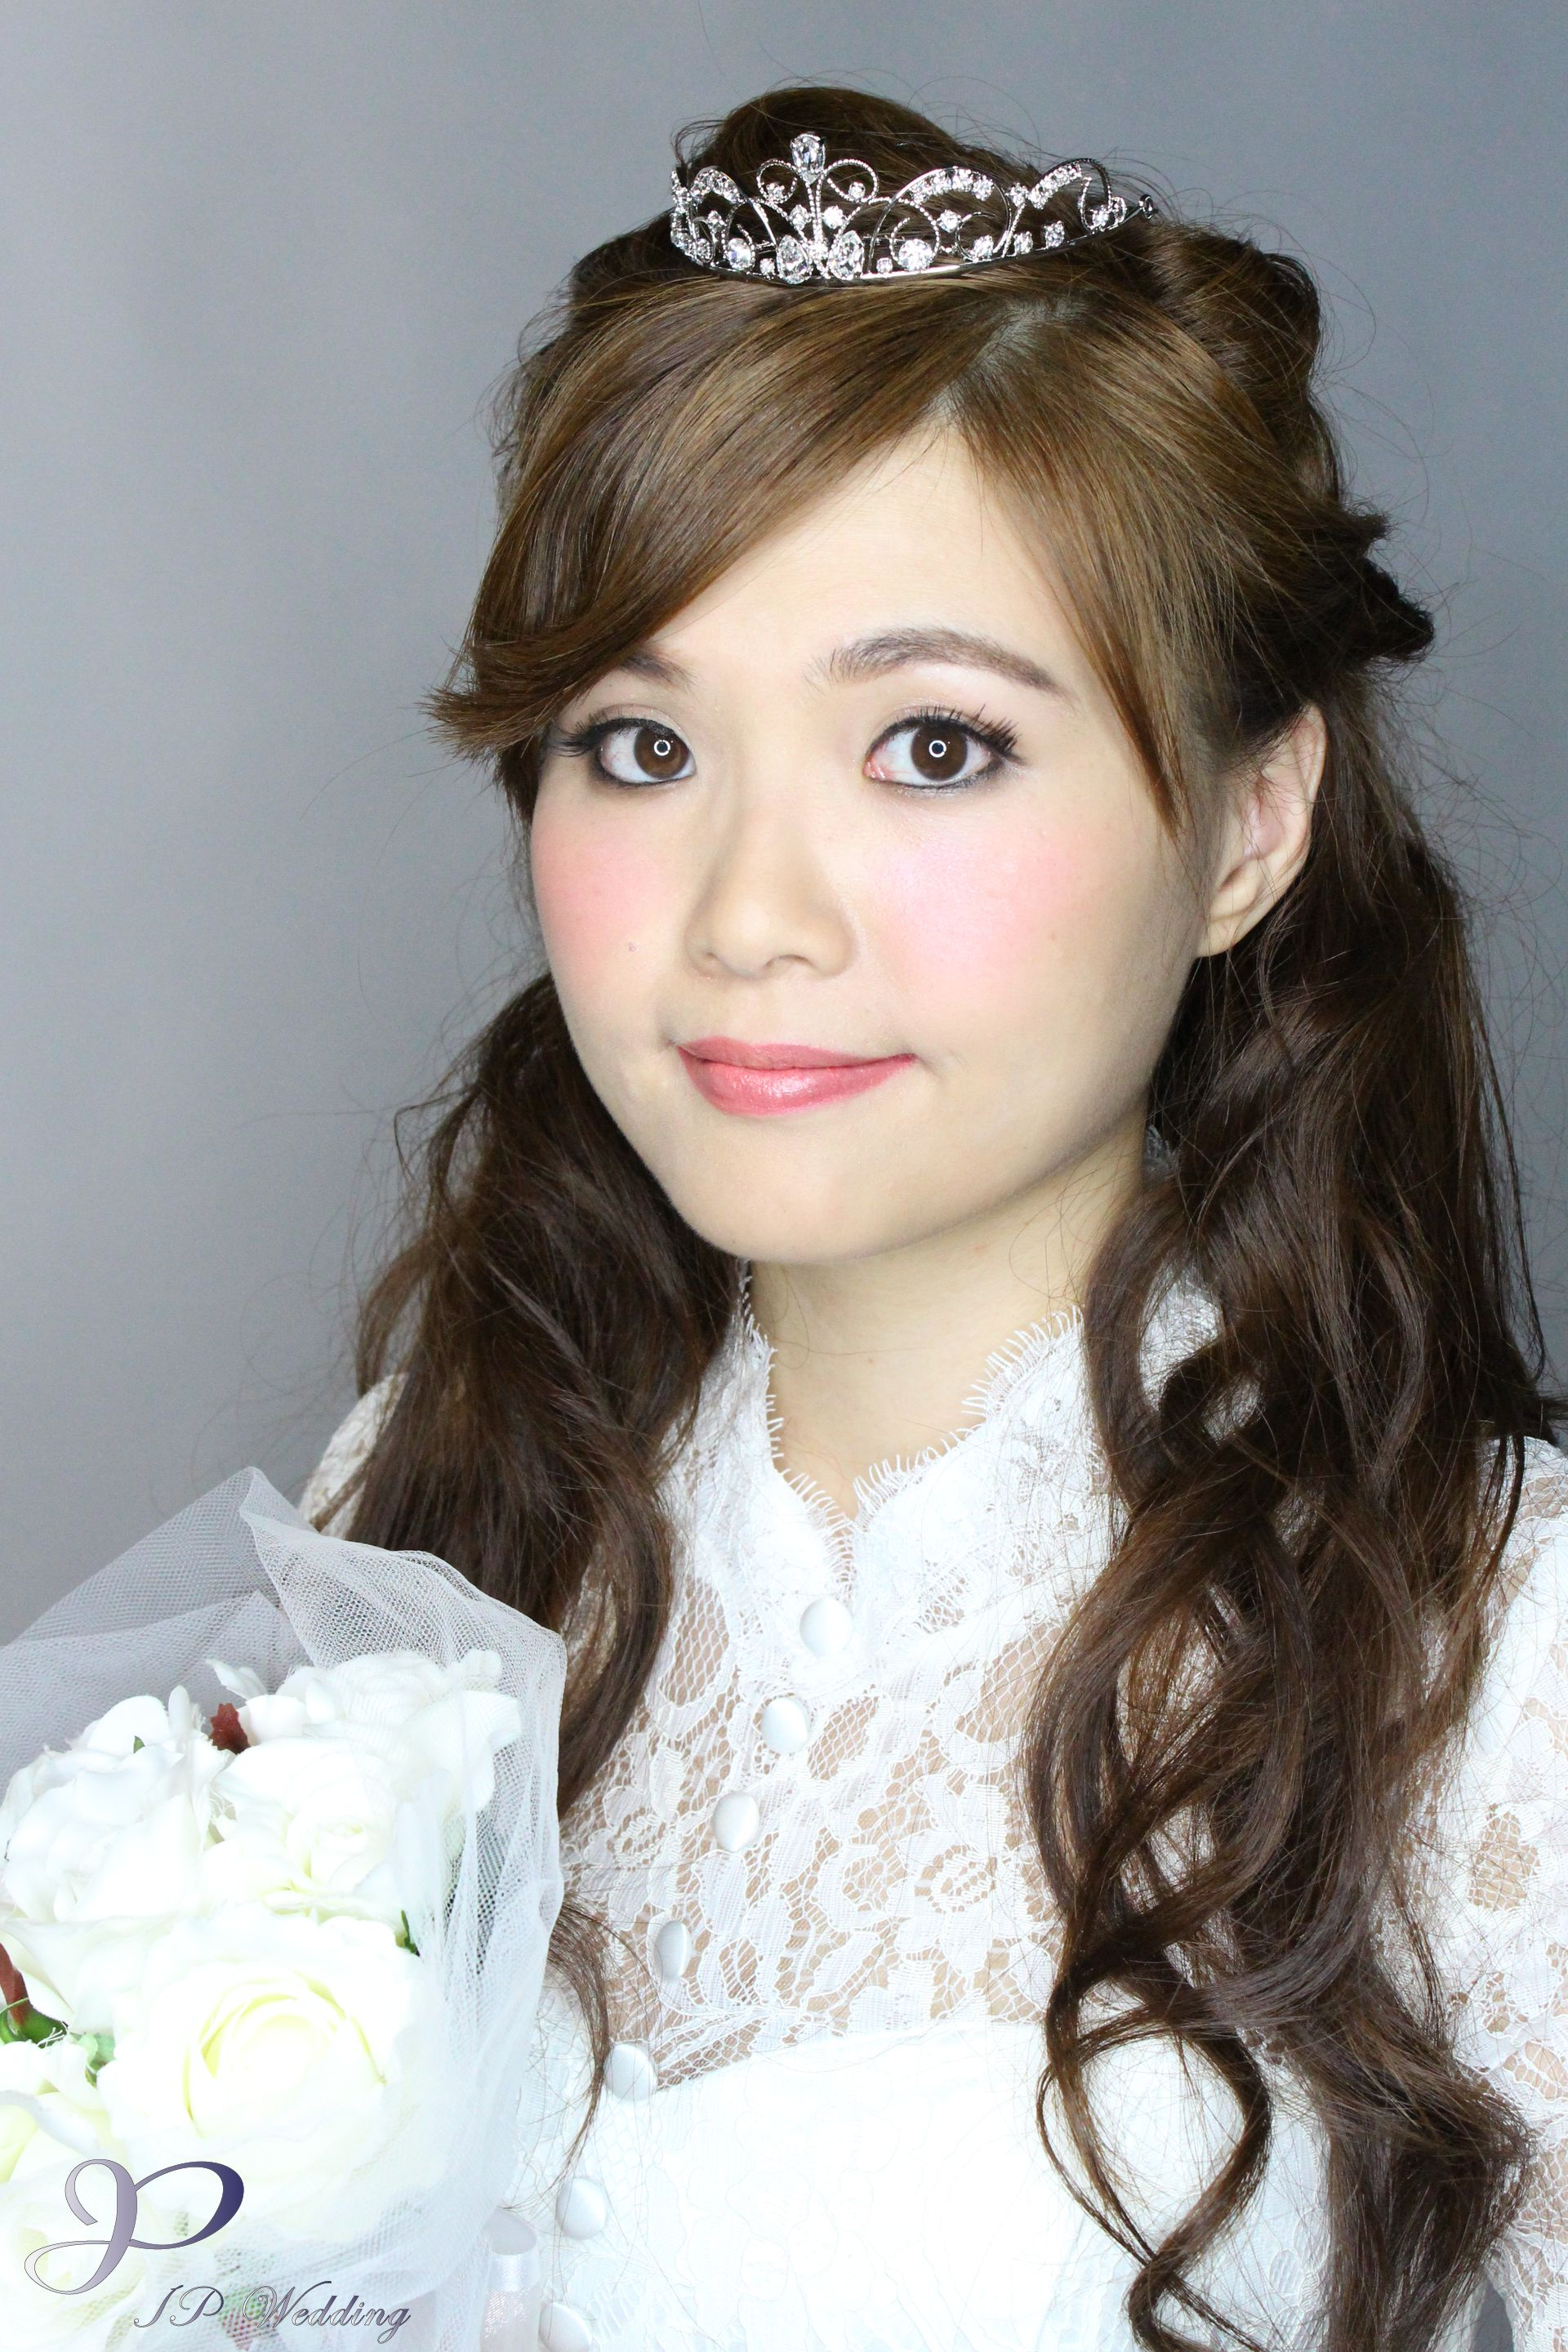 JP Wedding Bridal Makeup香港新娘化妝師